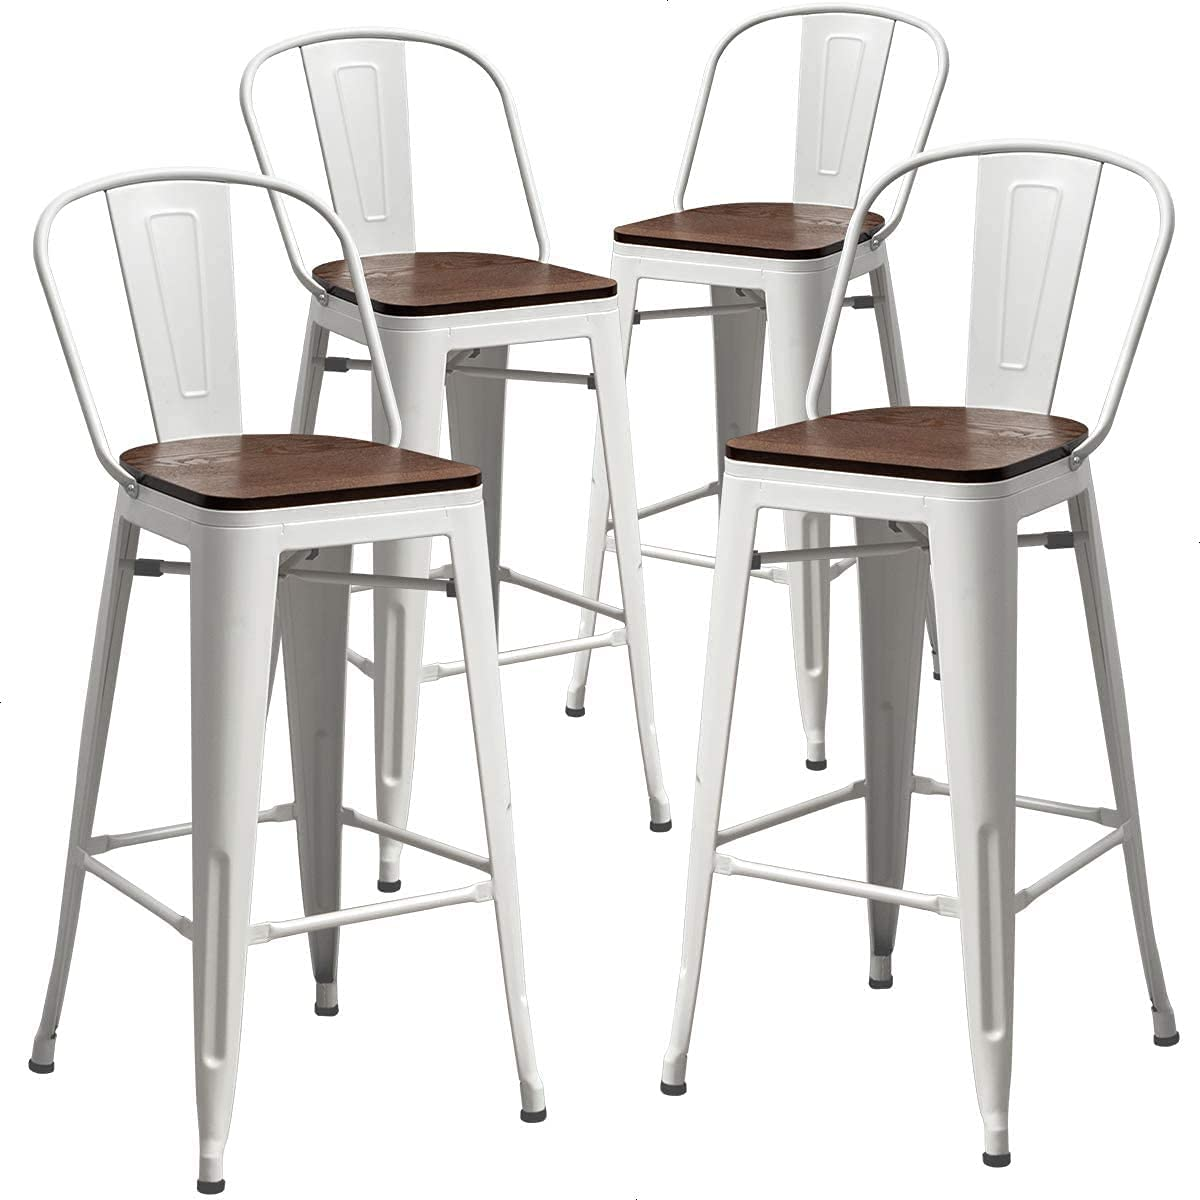 Mail order cheap AKLAUS Swivel Metal Bar Stools Set Height Manufacturer regenerated product Counter of 4 Co